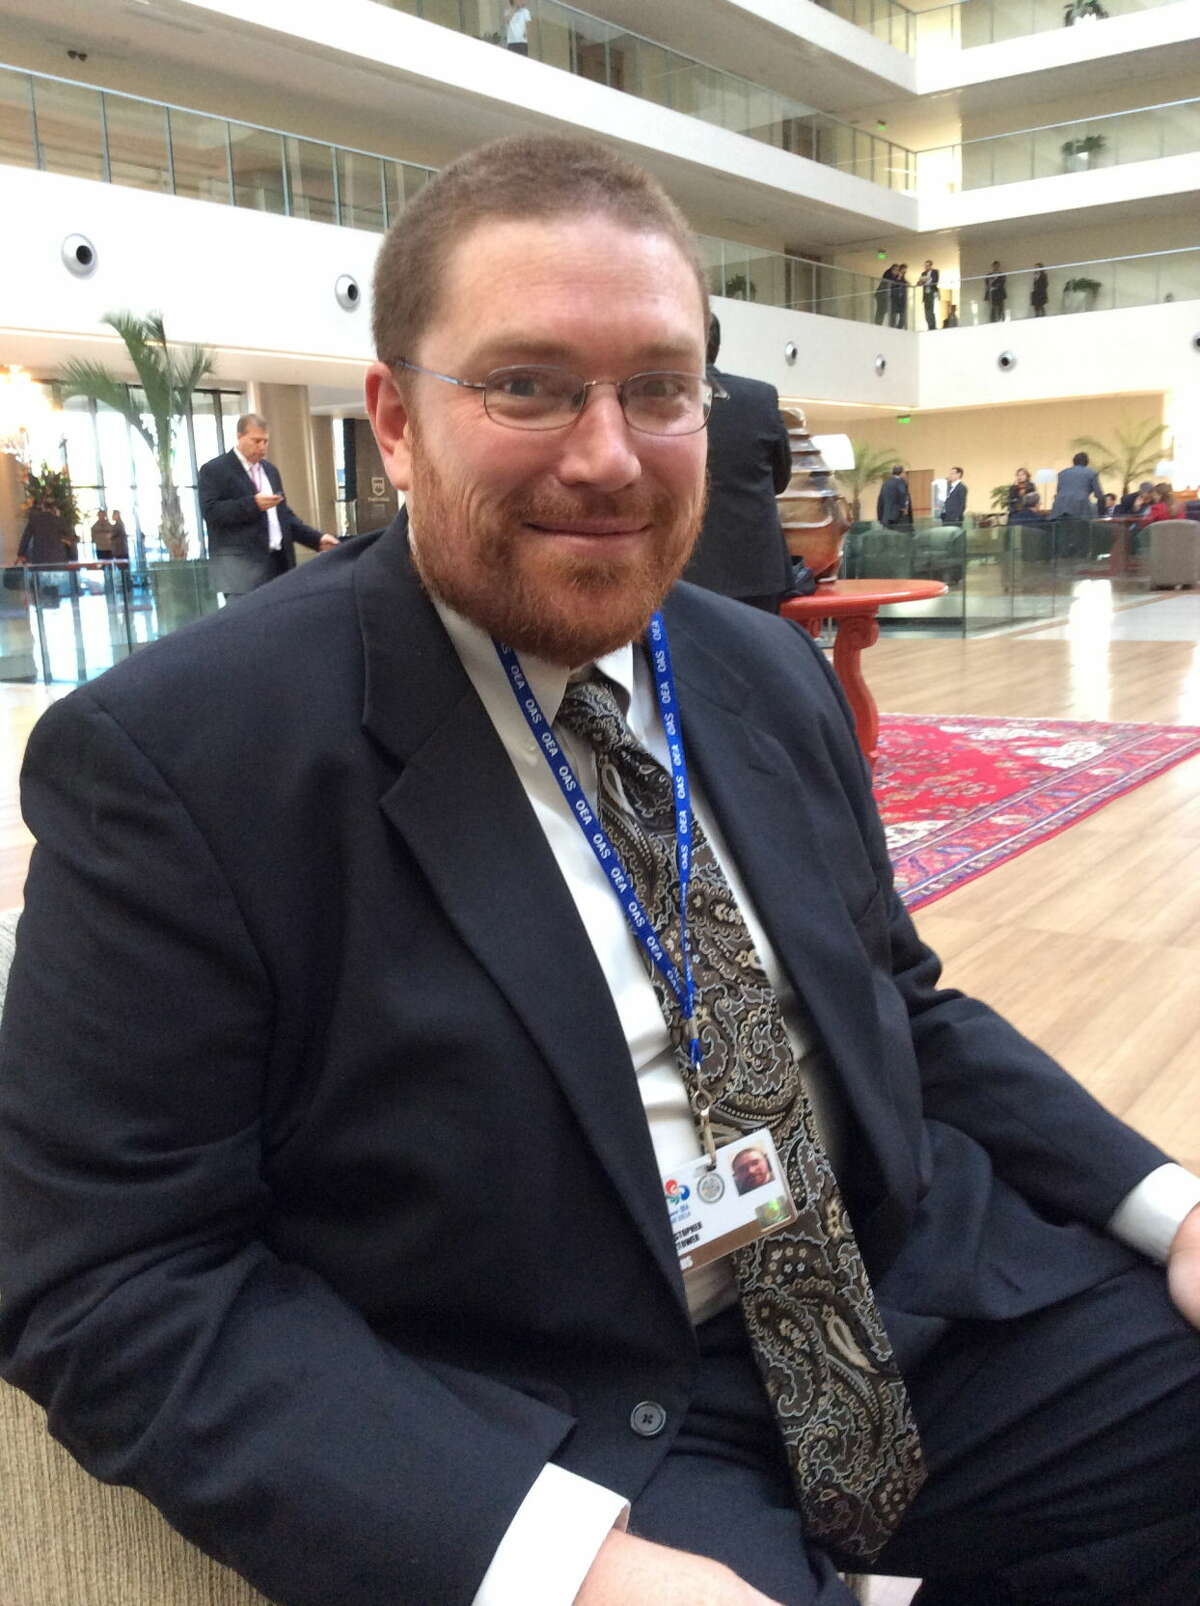 Chris Hightower is Social Studies Department chair and government teacher at Midland High School.